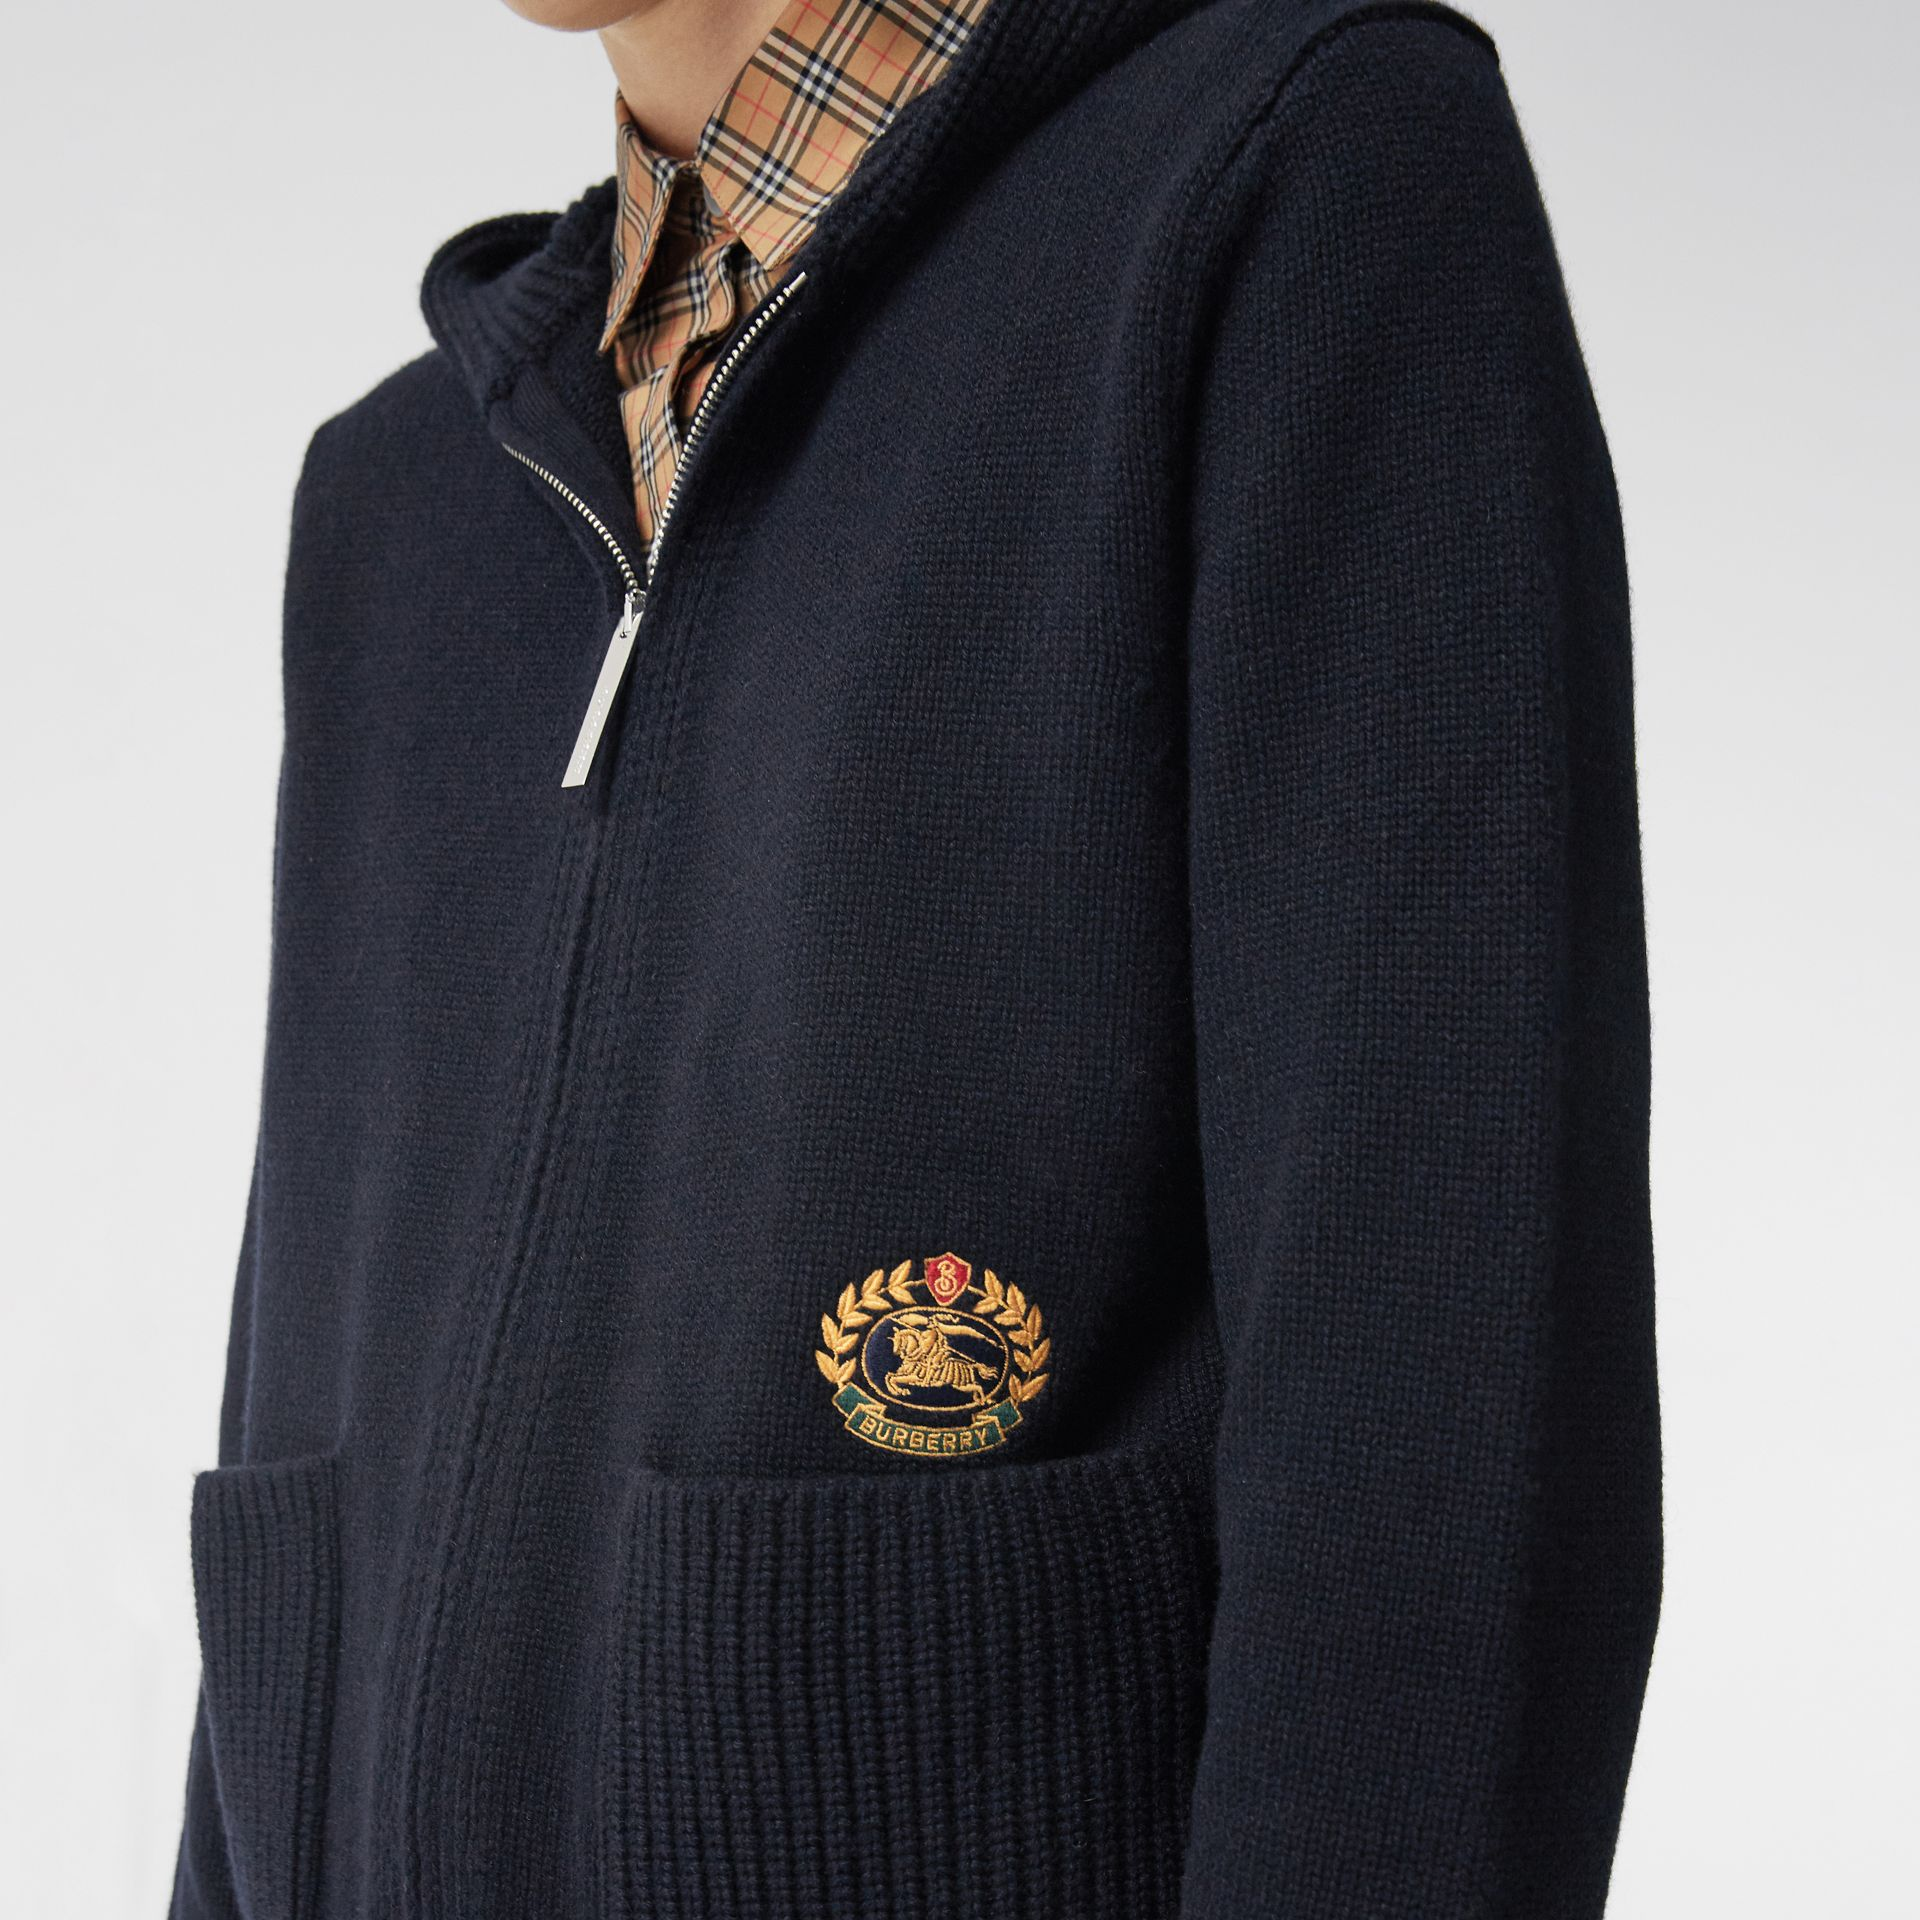 Embroidered Crest Cashmere Hooded Top in Navy - Women | Burberry United States - gallery image 1